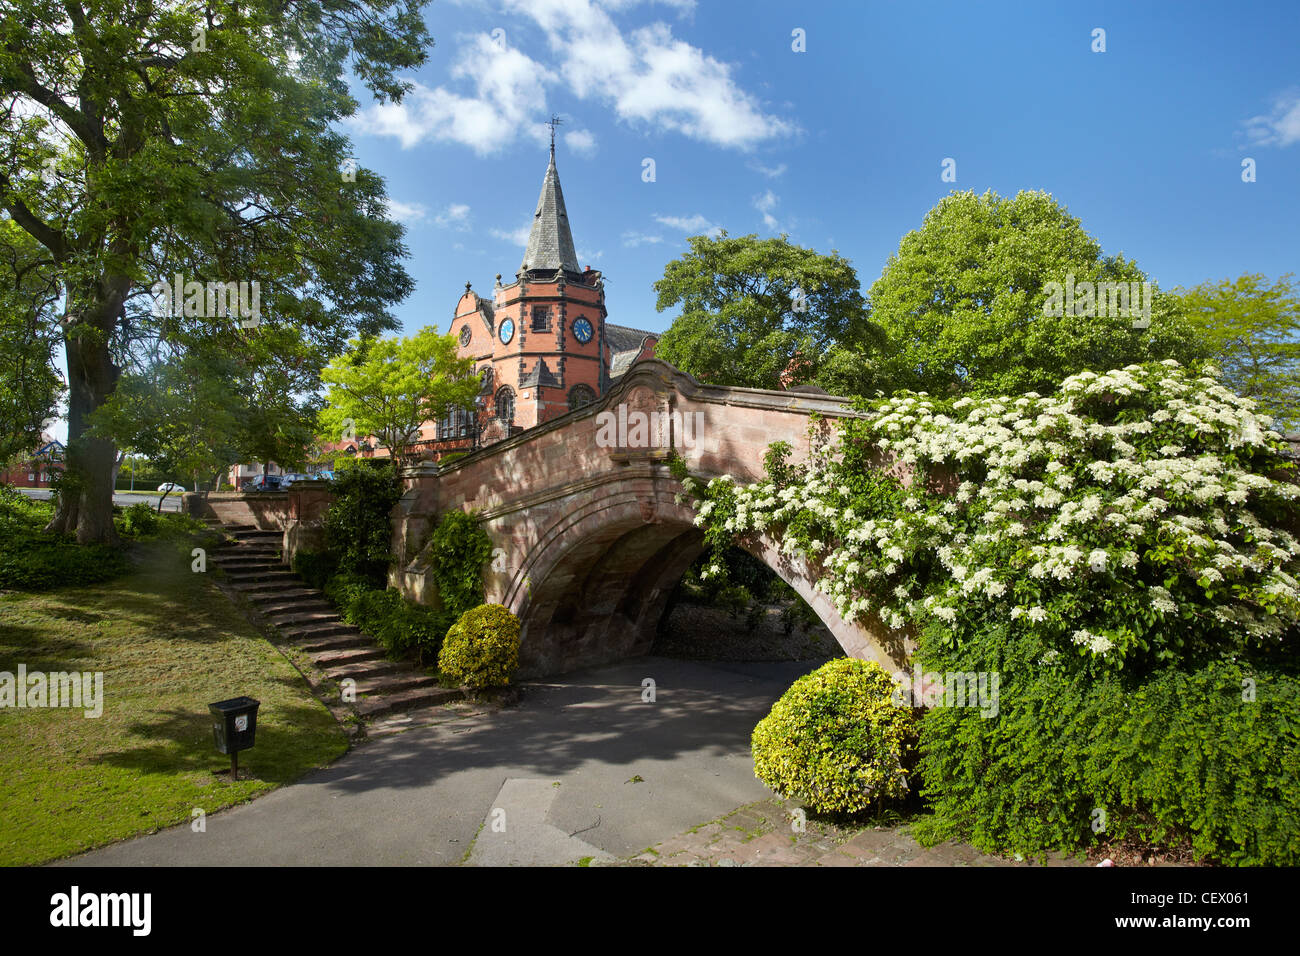 The Dell, Port Sunlight, Wirral, UK - Stock Image